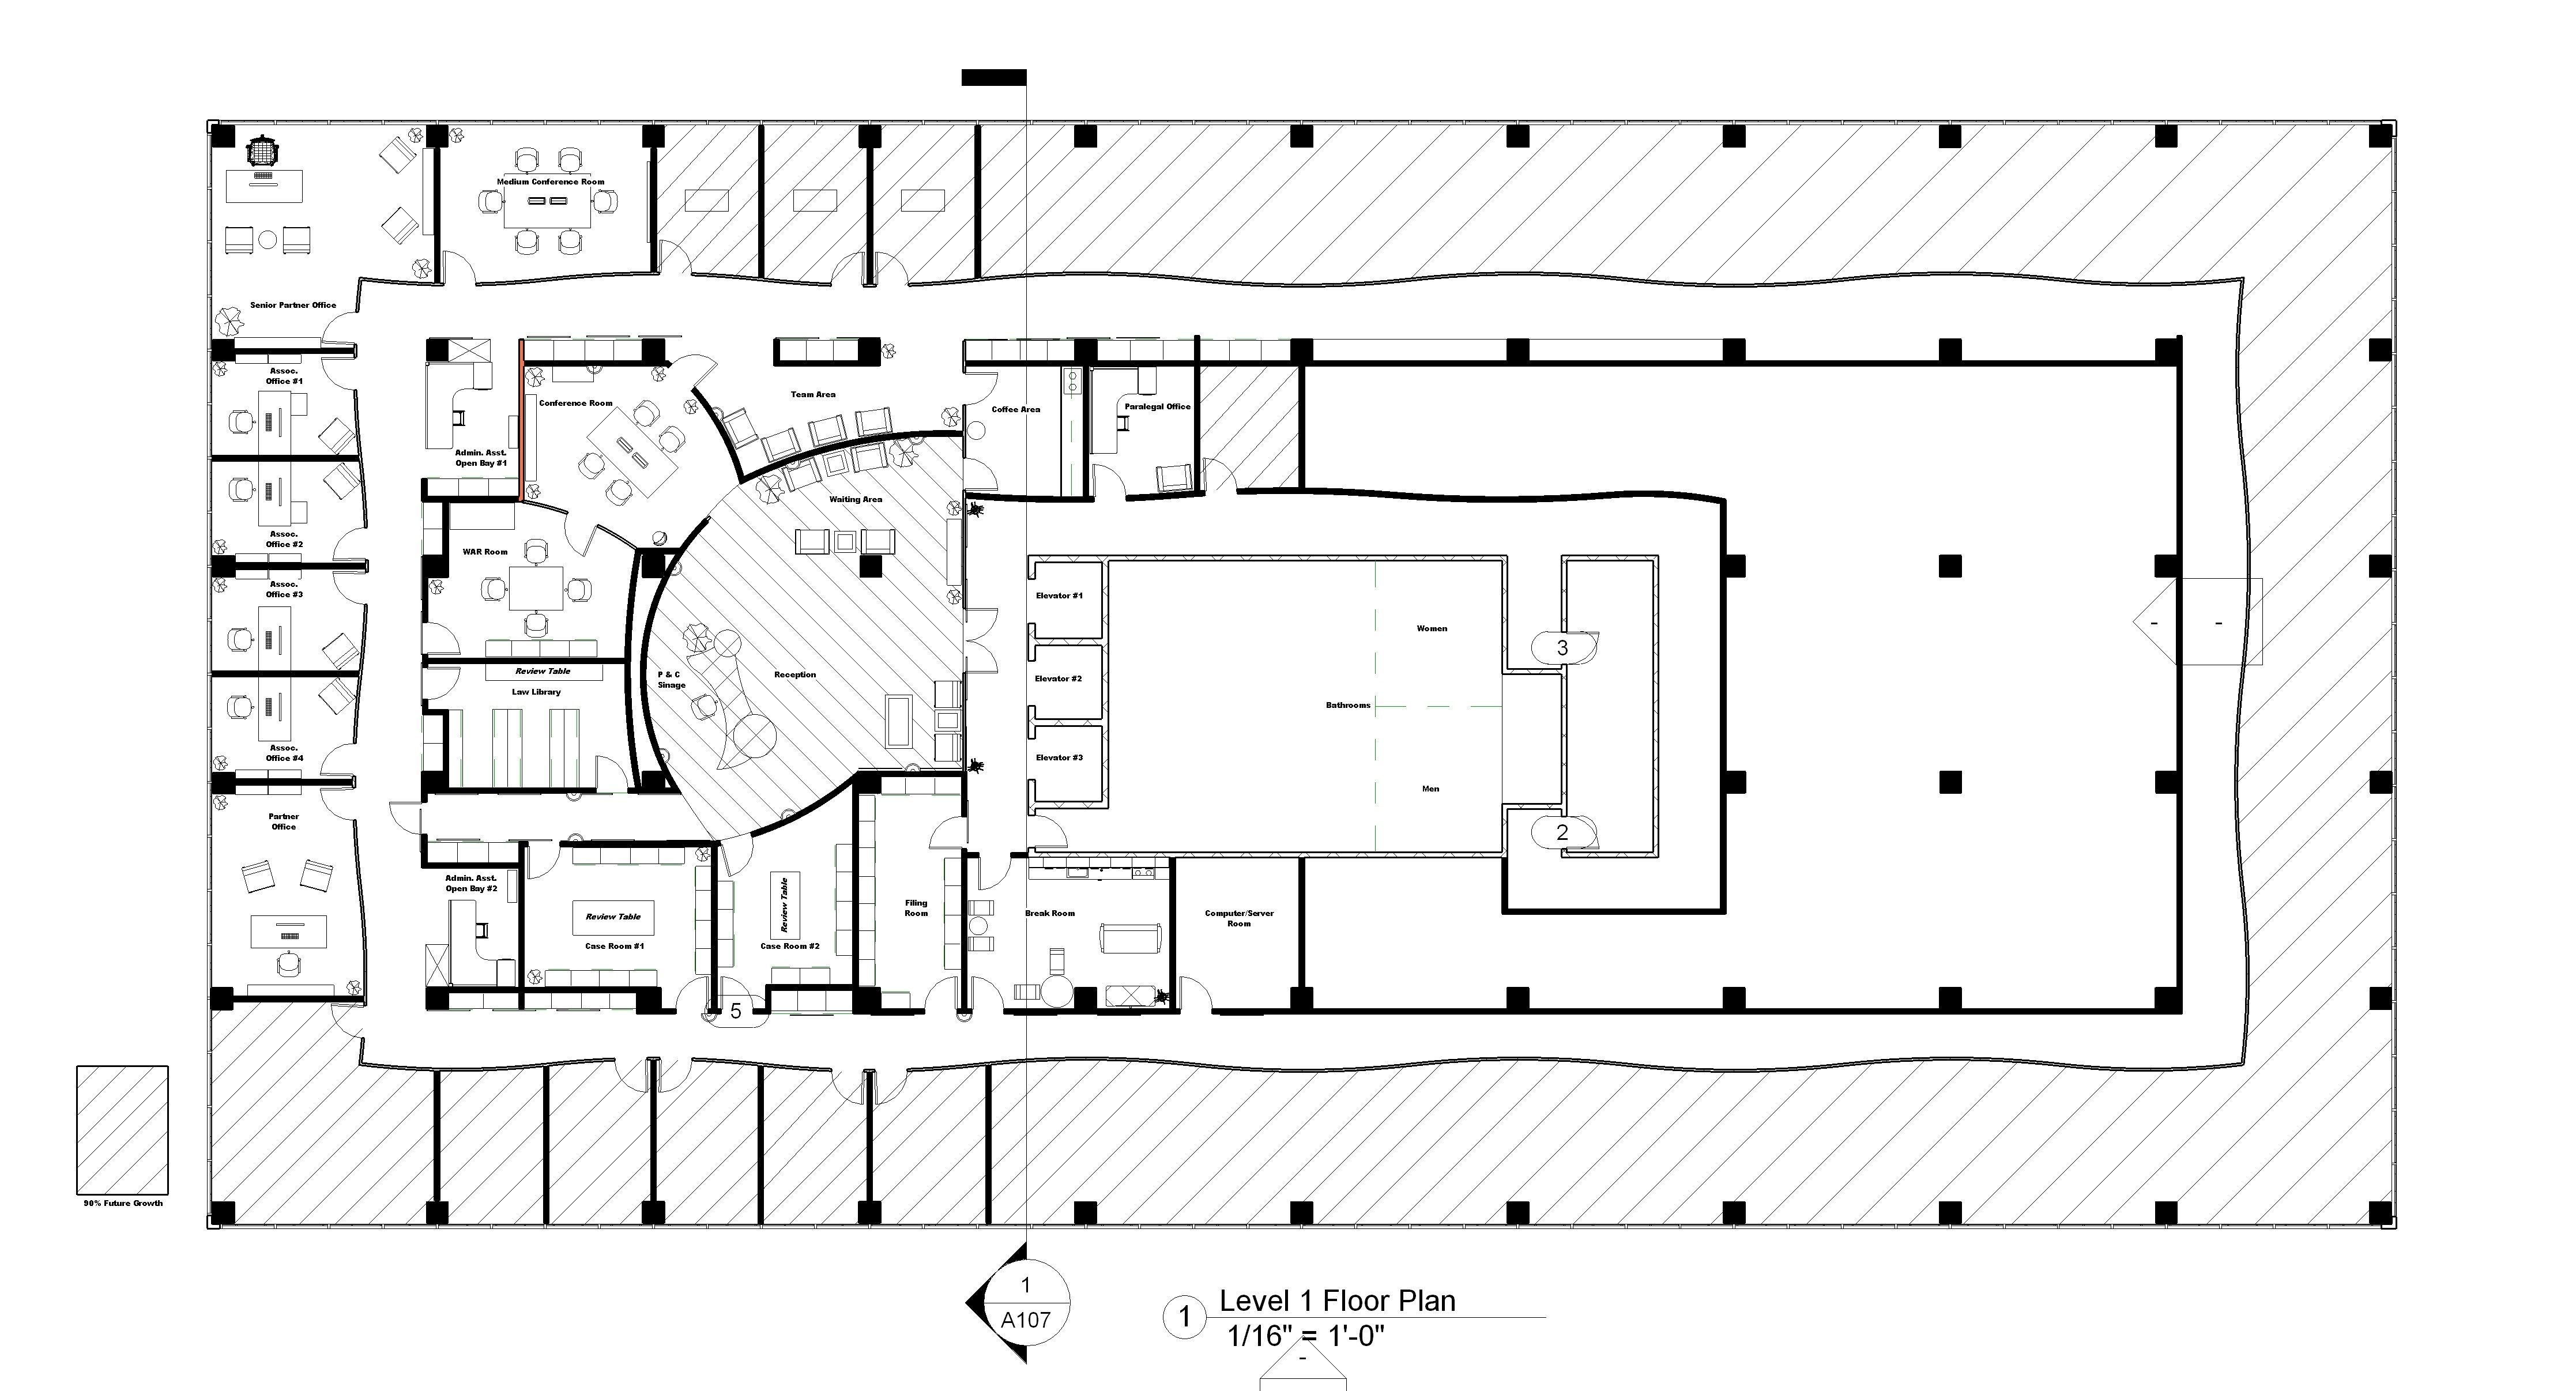 Law office floor plan design google search benin for Office floor plan